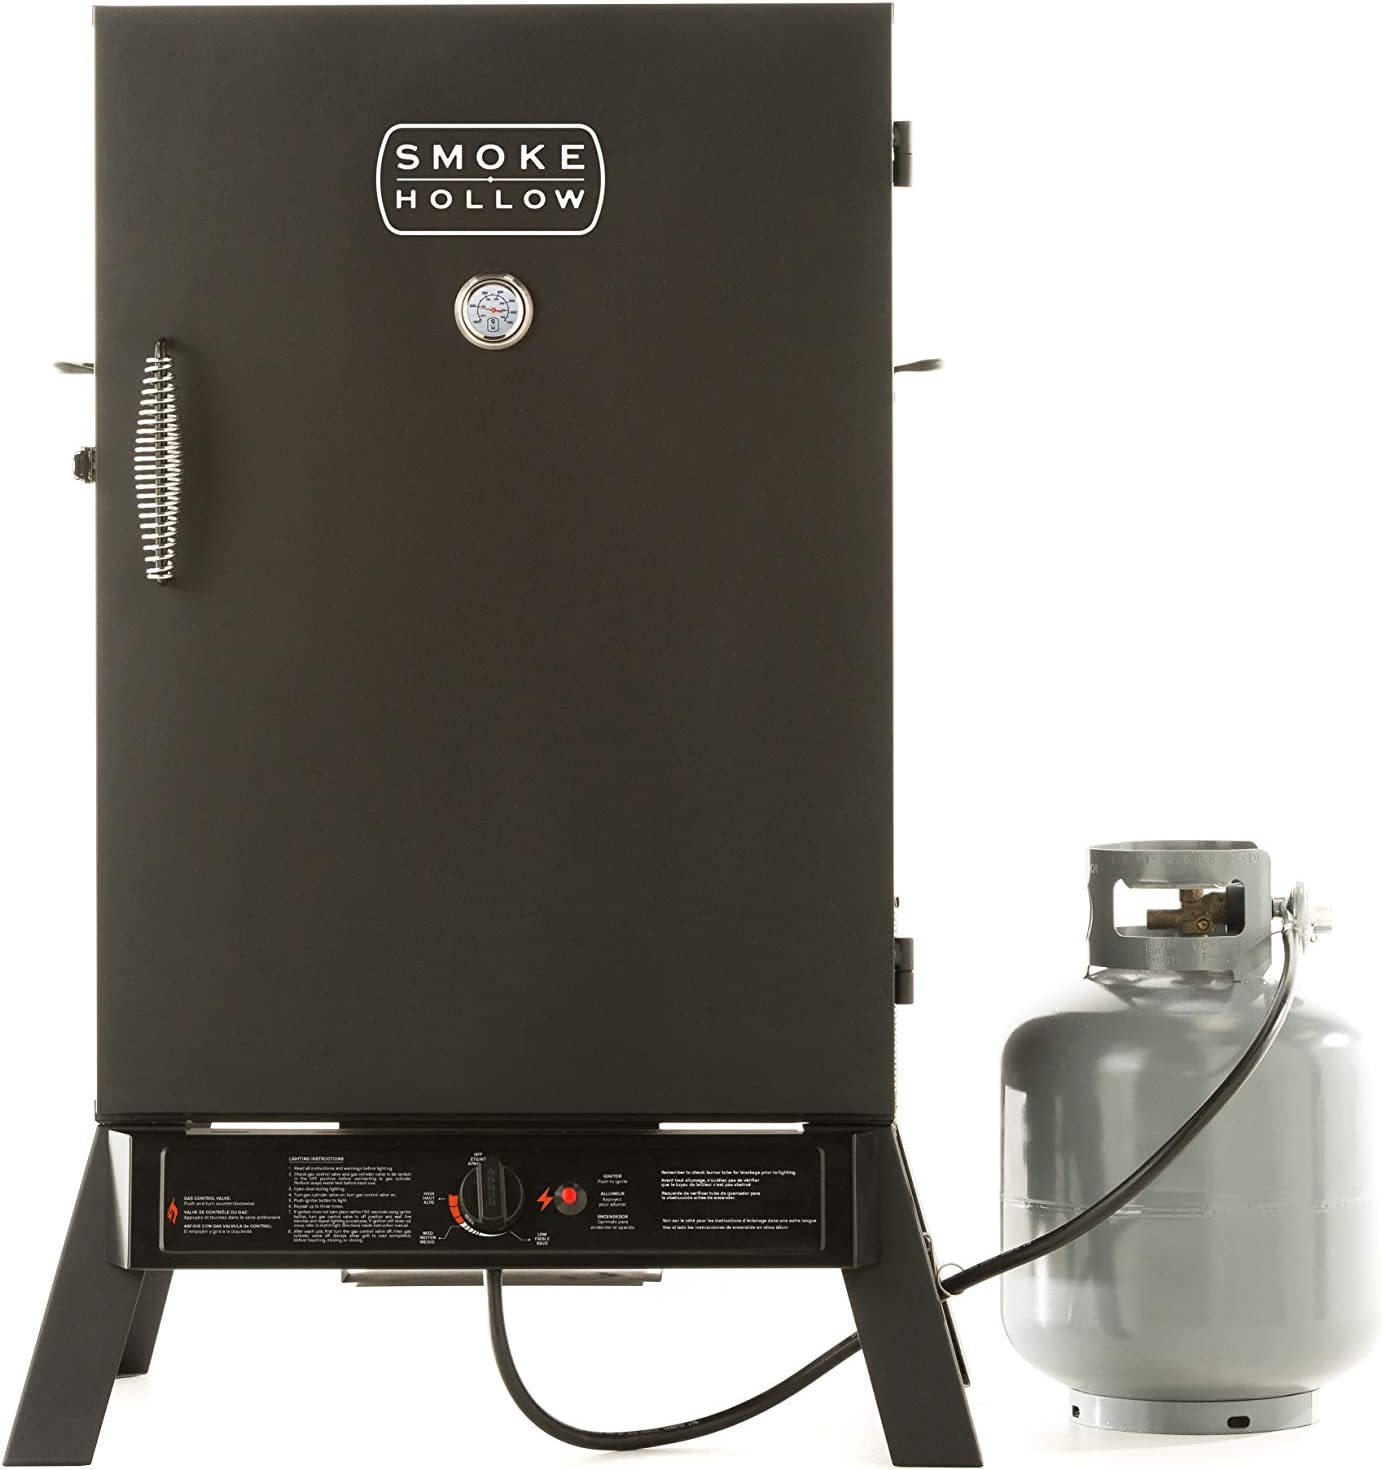 Best Basic model - Masterbuilt Smoke Hollow PS40B Gas Smoker